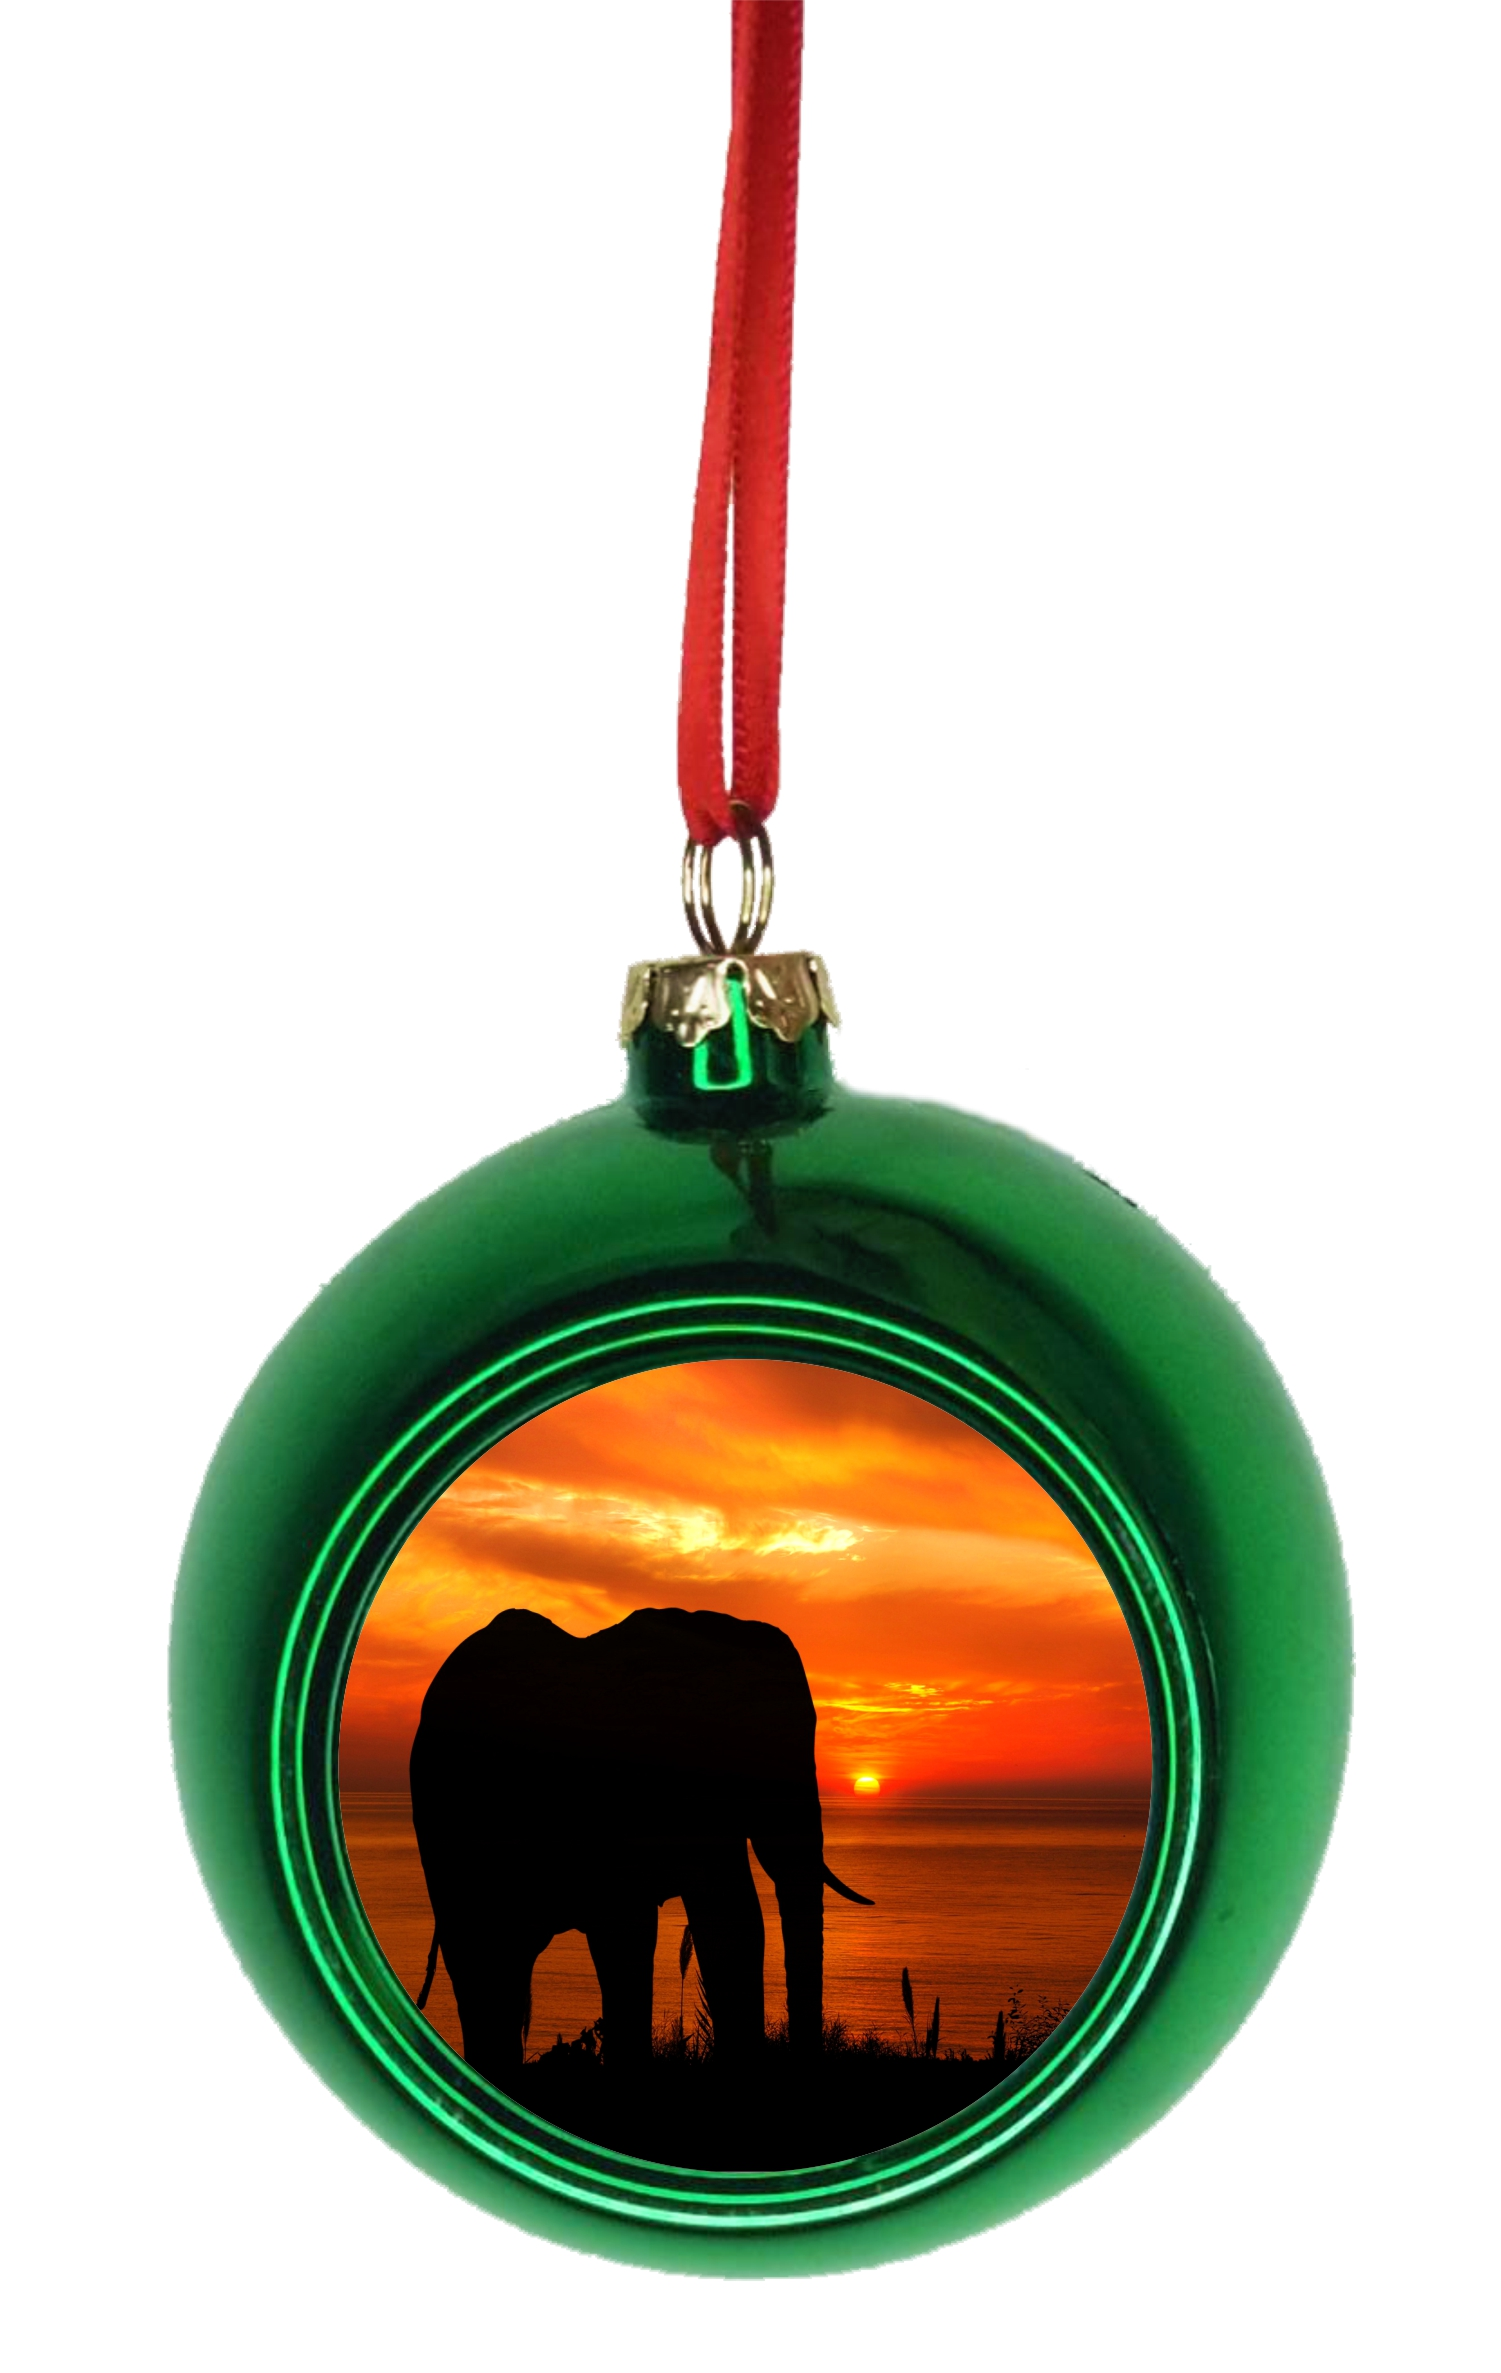 Ornament Elephant Silhouette At Sunset Bauble Christmas Ornaments Green Bauble Tree Decoration